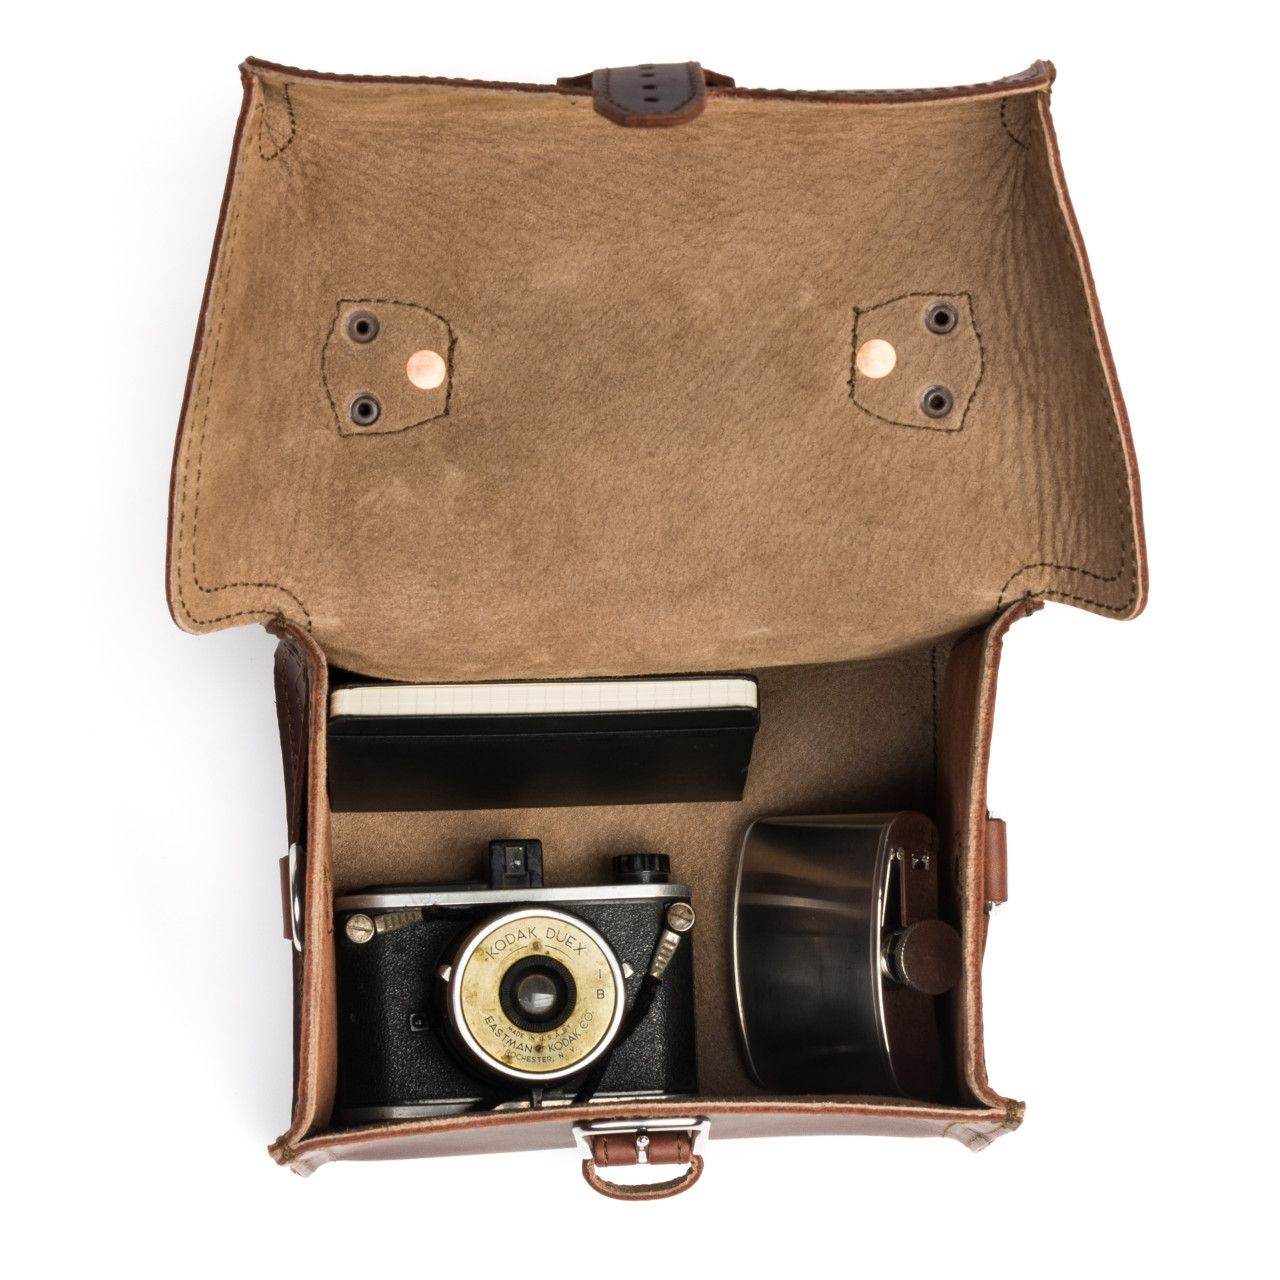 For your most valuable souvenirs suitcase will be leather gadget bag medium in chestnut leather